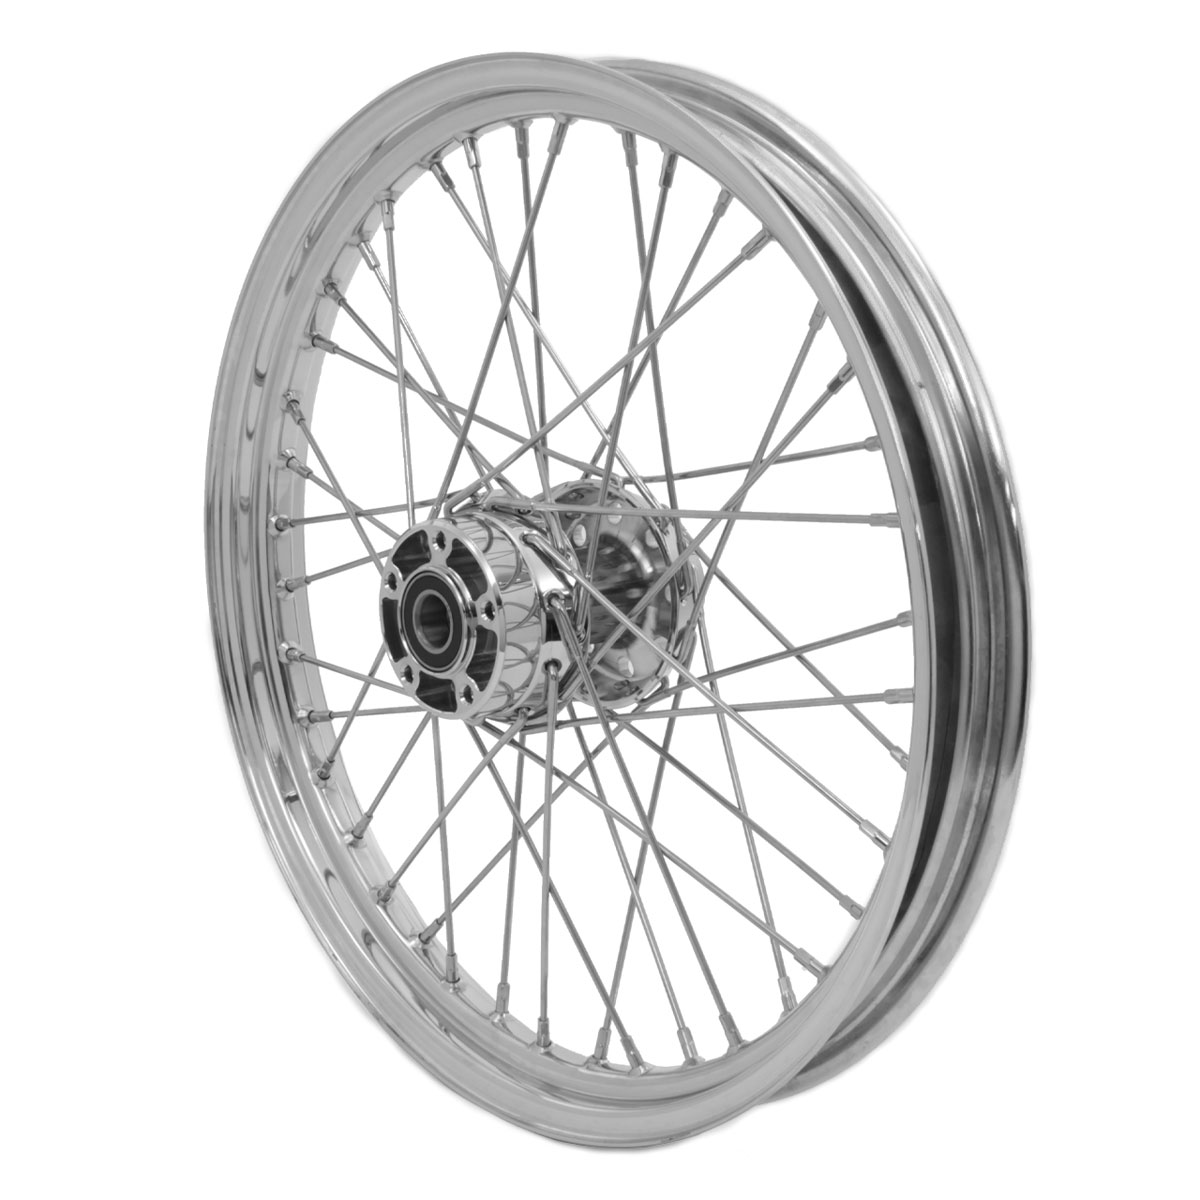 V-Twin Manufacturing Replica 40 Spoke Front Wheel, 21 x 2.15″